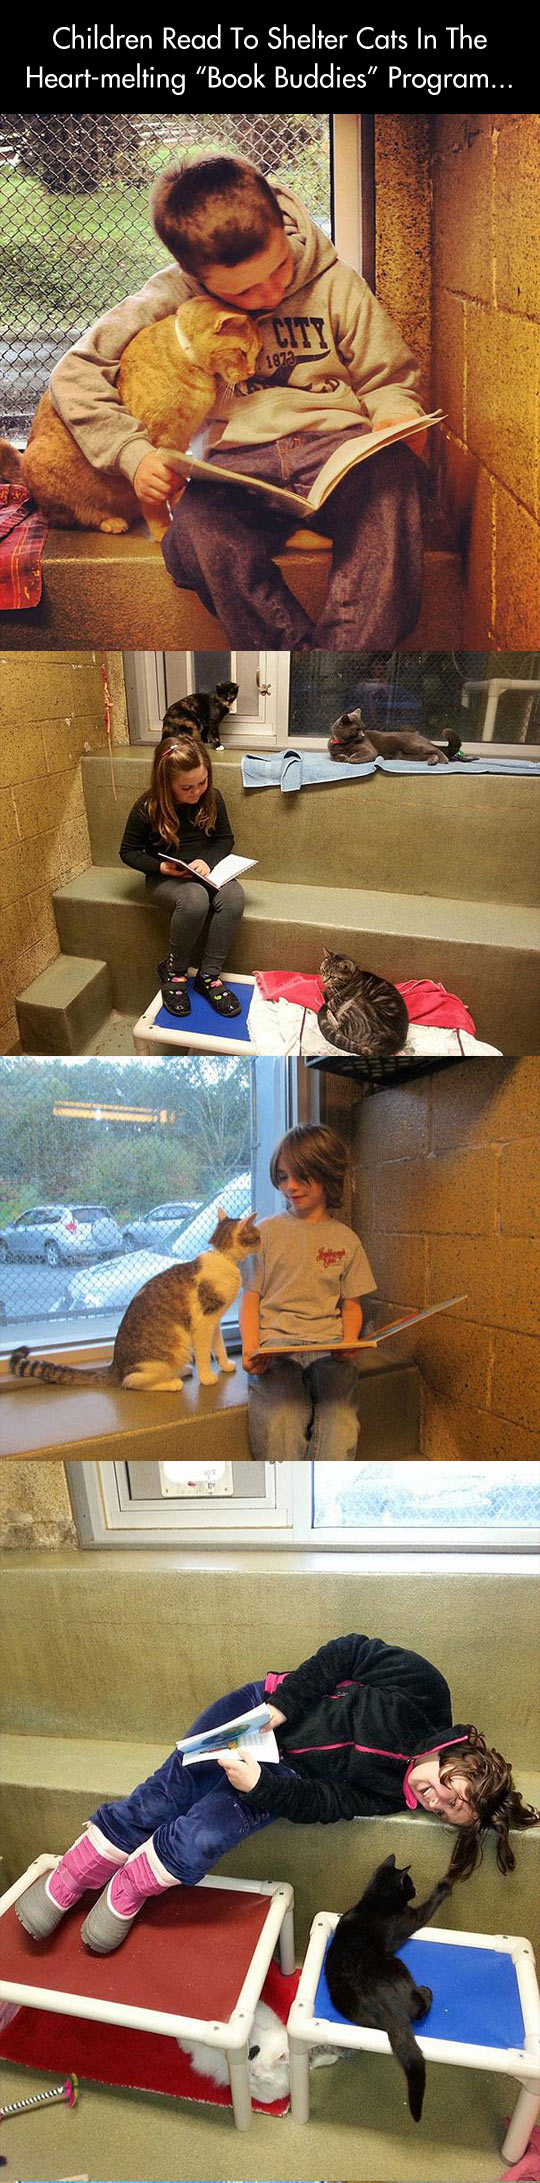 Children read to shelter cats...